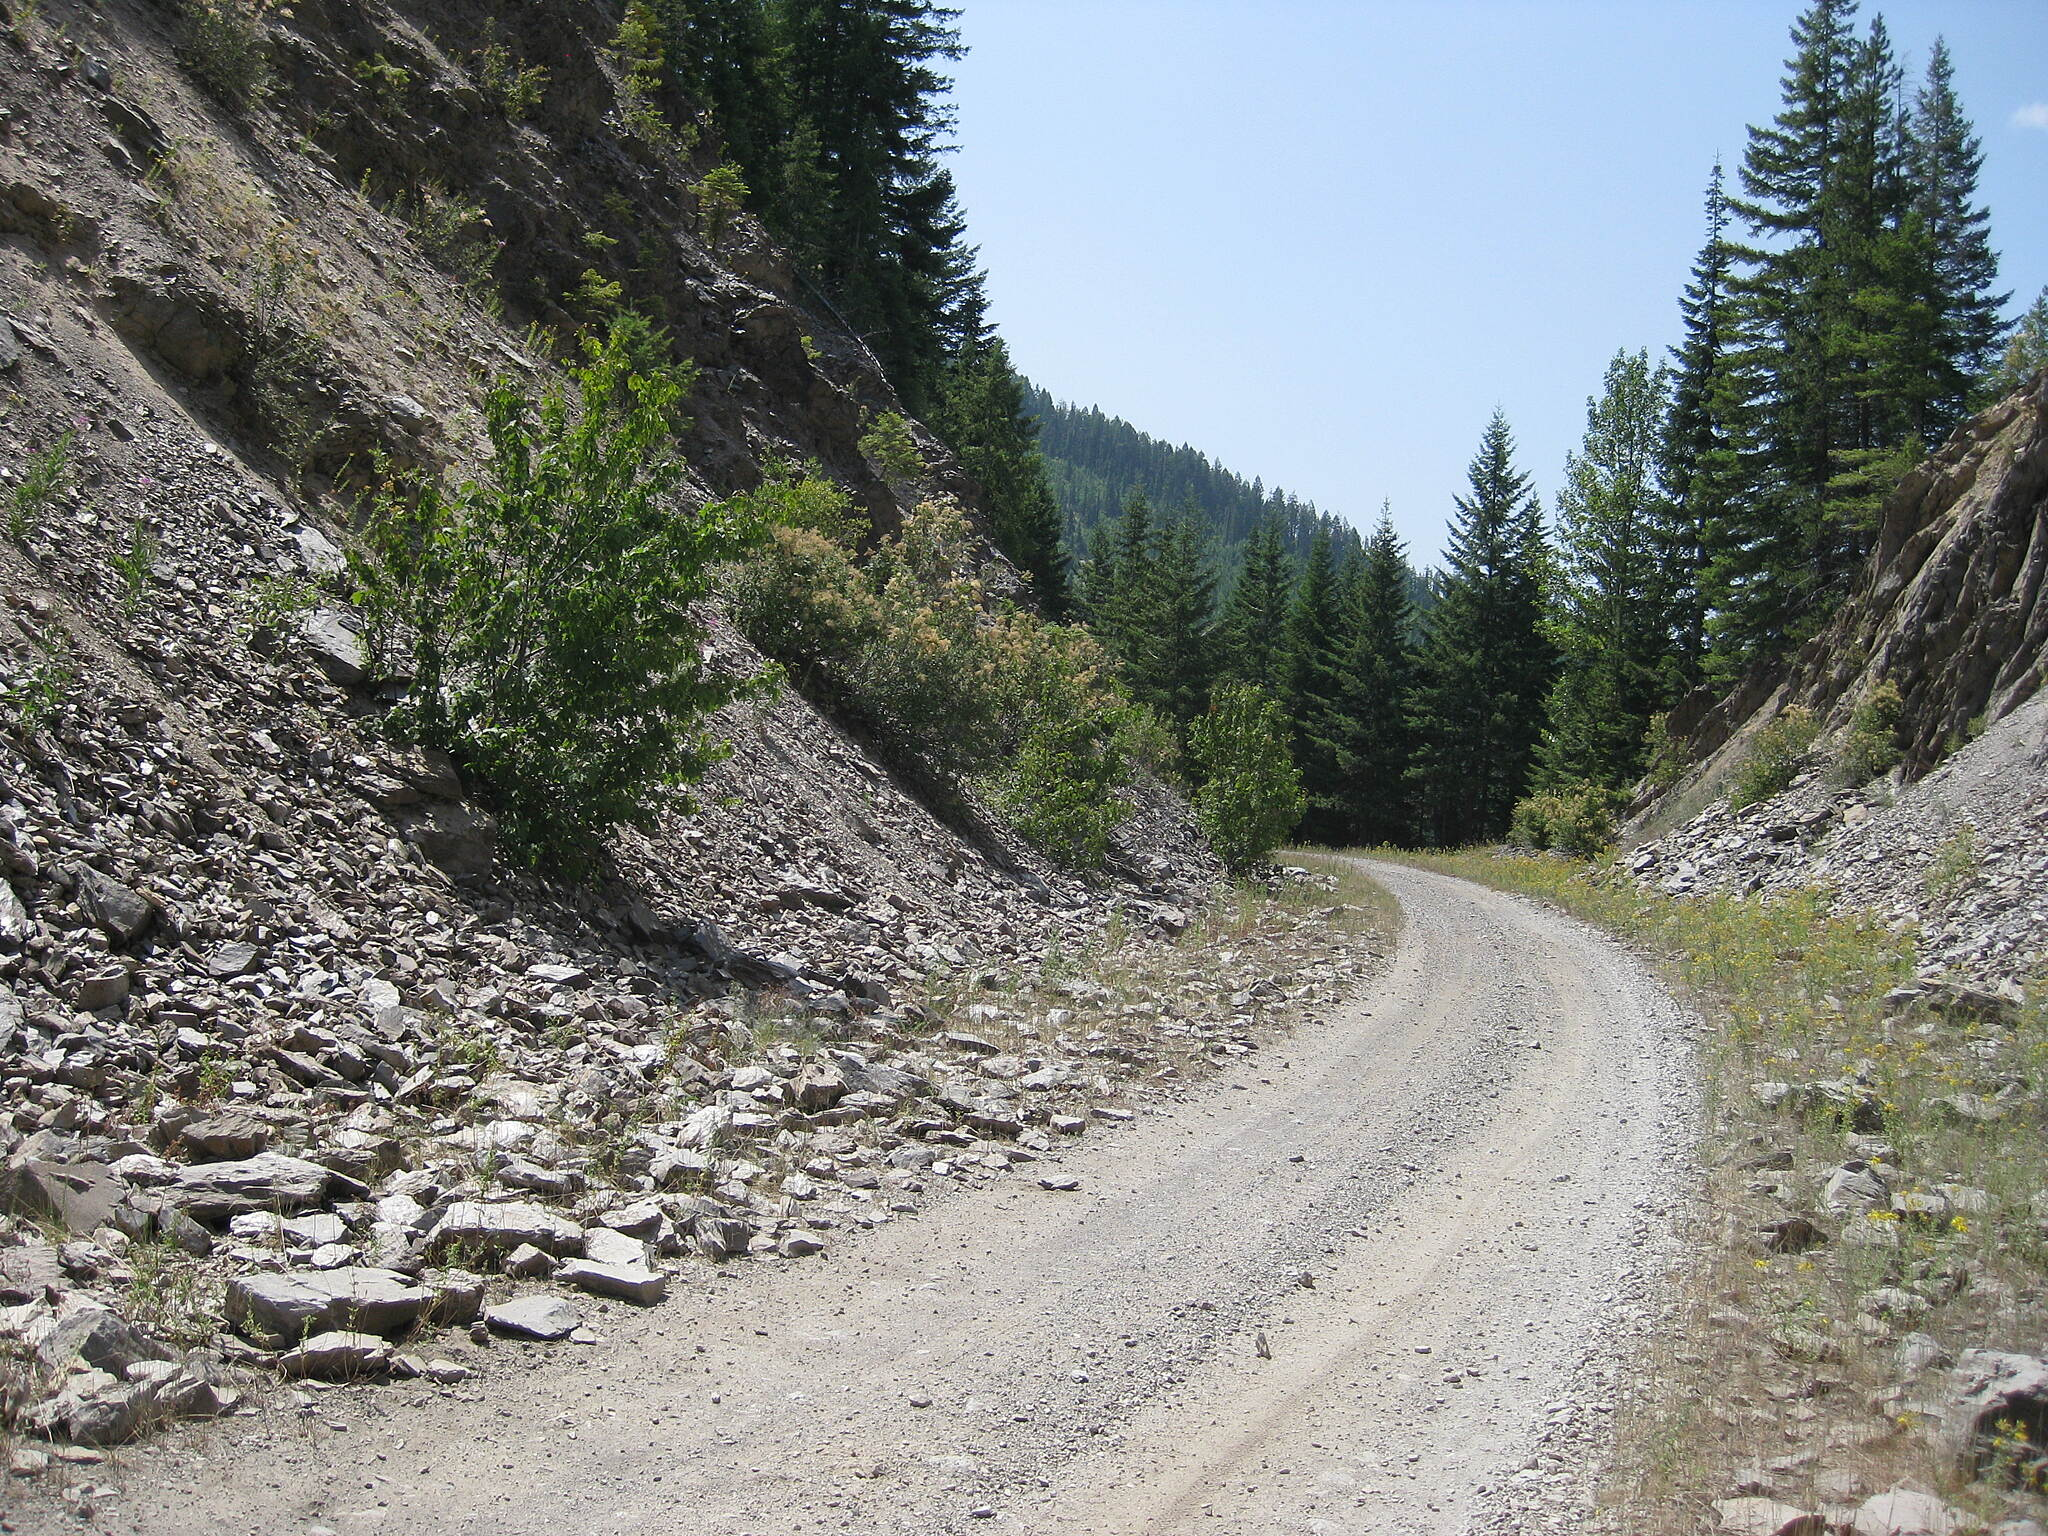 NorPac Trail Midday, Midway Between Mullan and Lookout Pass